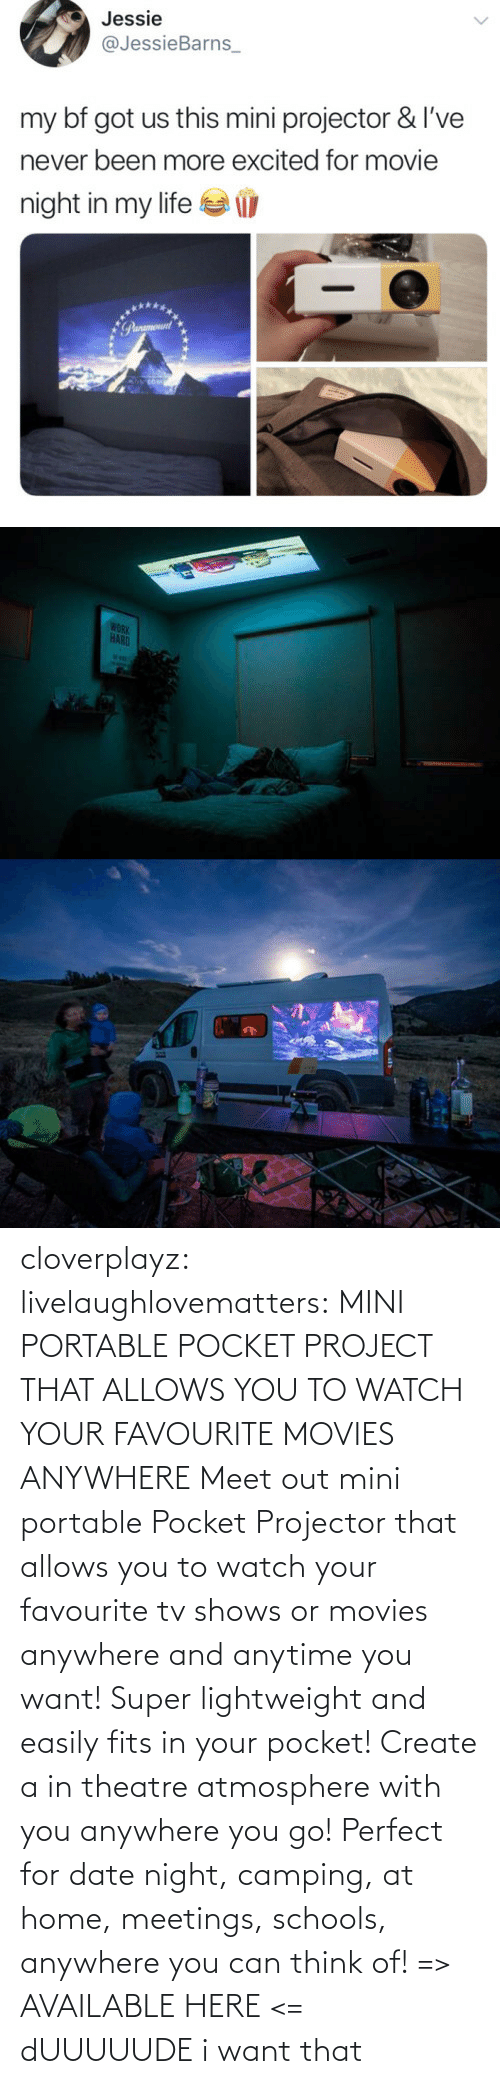 Date: cloverplayz: livelaughlovematters:  MINI PORTABLE POCKET PROJECT THAT ALLOWS YOU TO WATCH YOUR FAVOURITE MOVIES ANYWHERE Meet out mini portable Pocket Projector that allows you to watch your favourite tv shows or movies anywhere and anytime you want! Super lightweight and easily fits in your pocket! Create a in theatre atmosphere with you anywhere you go! Perfect for date night, camping, at home, meetings, schools, anywhere you can think of! => AVAILABLE HERE <=  dUUUUUDE i want that